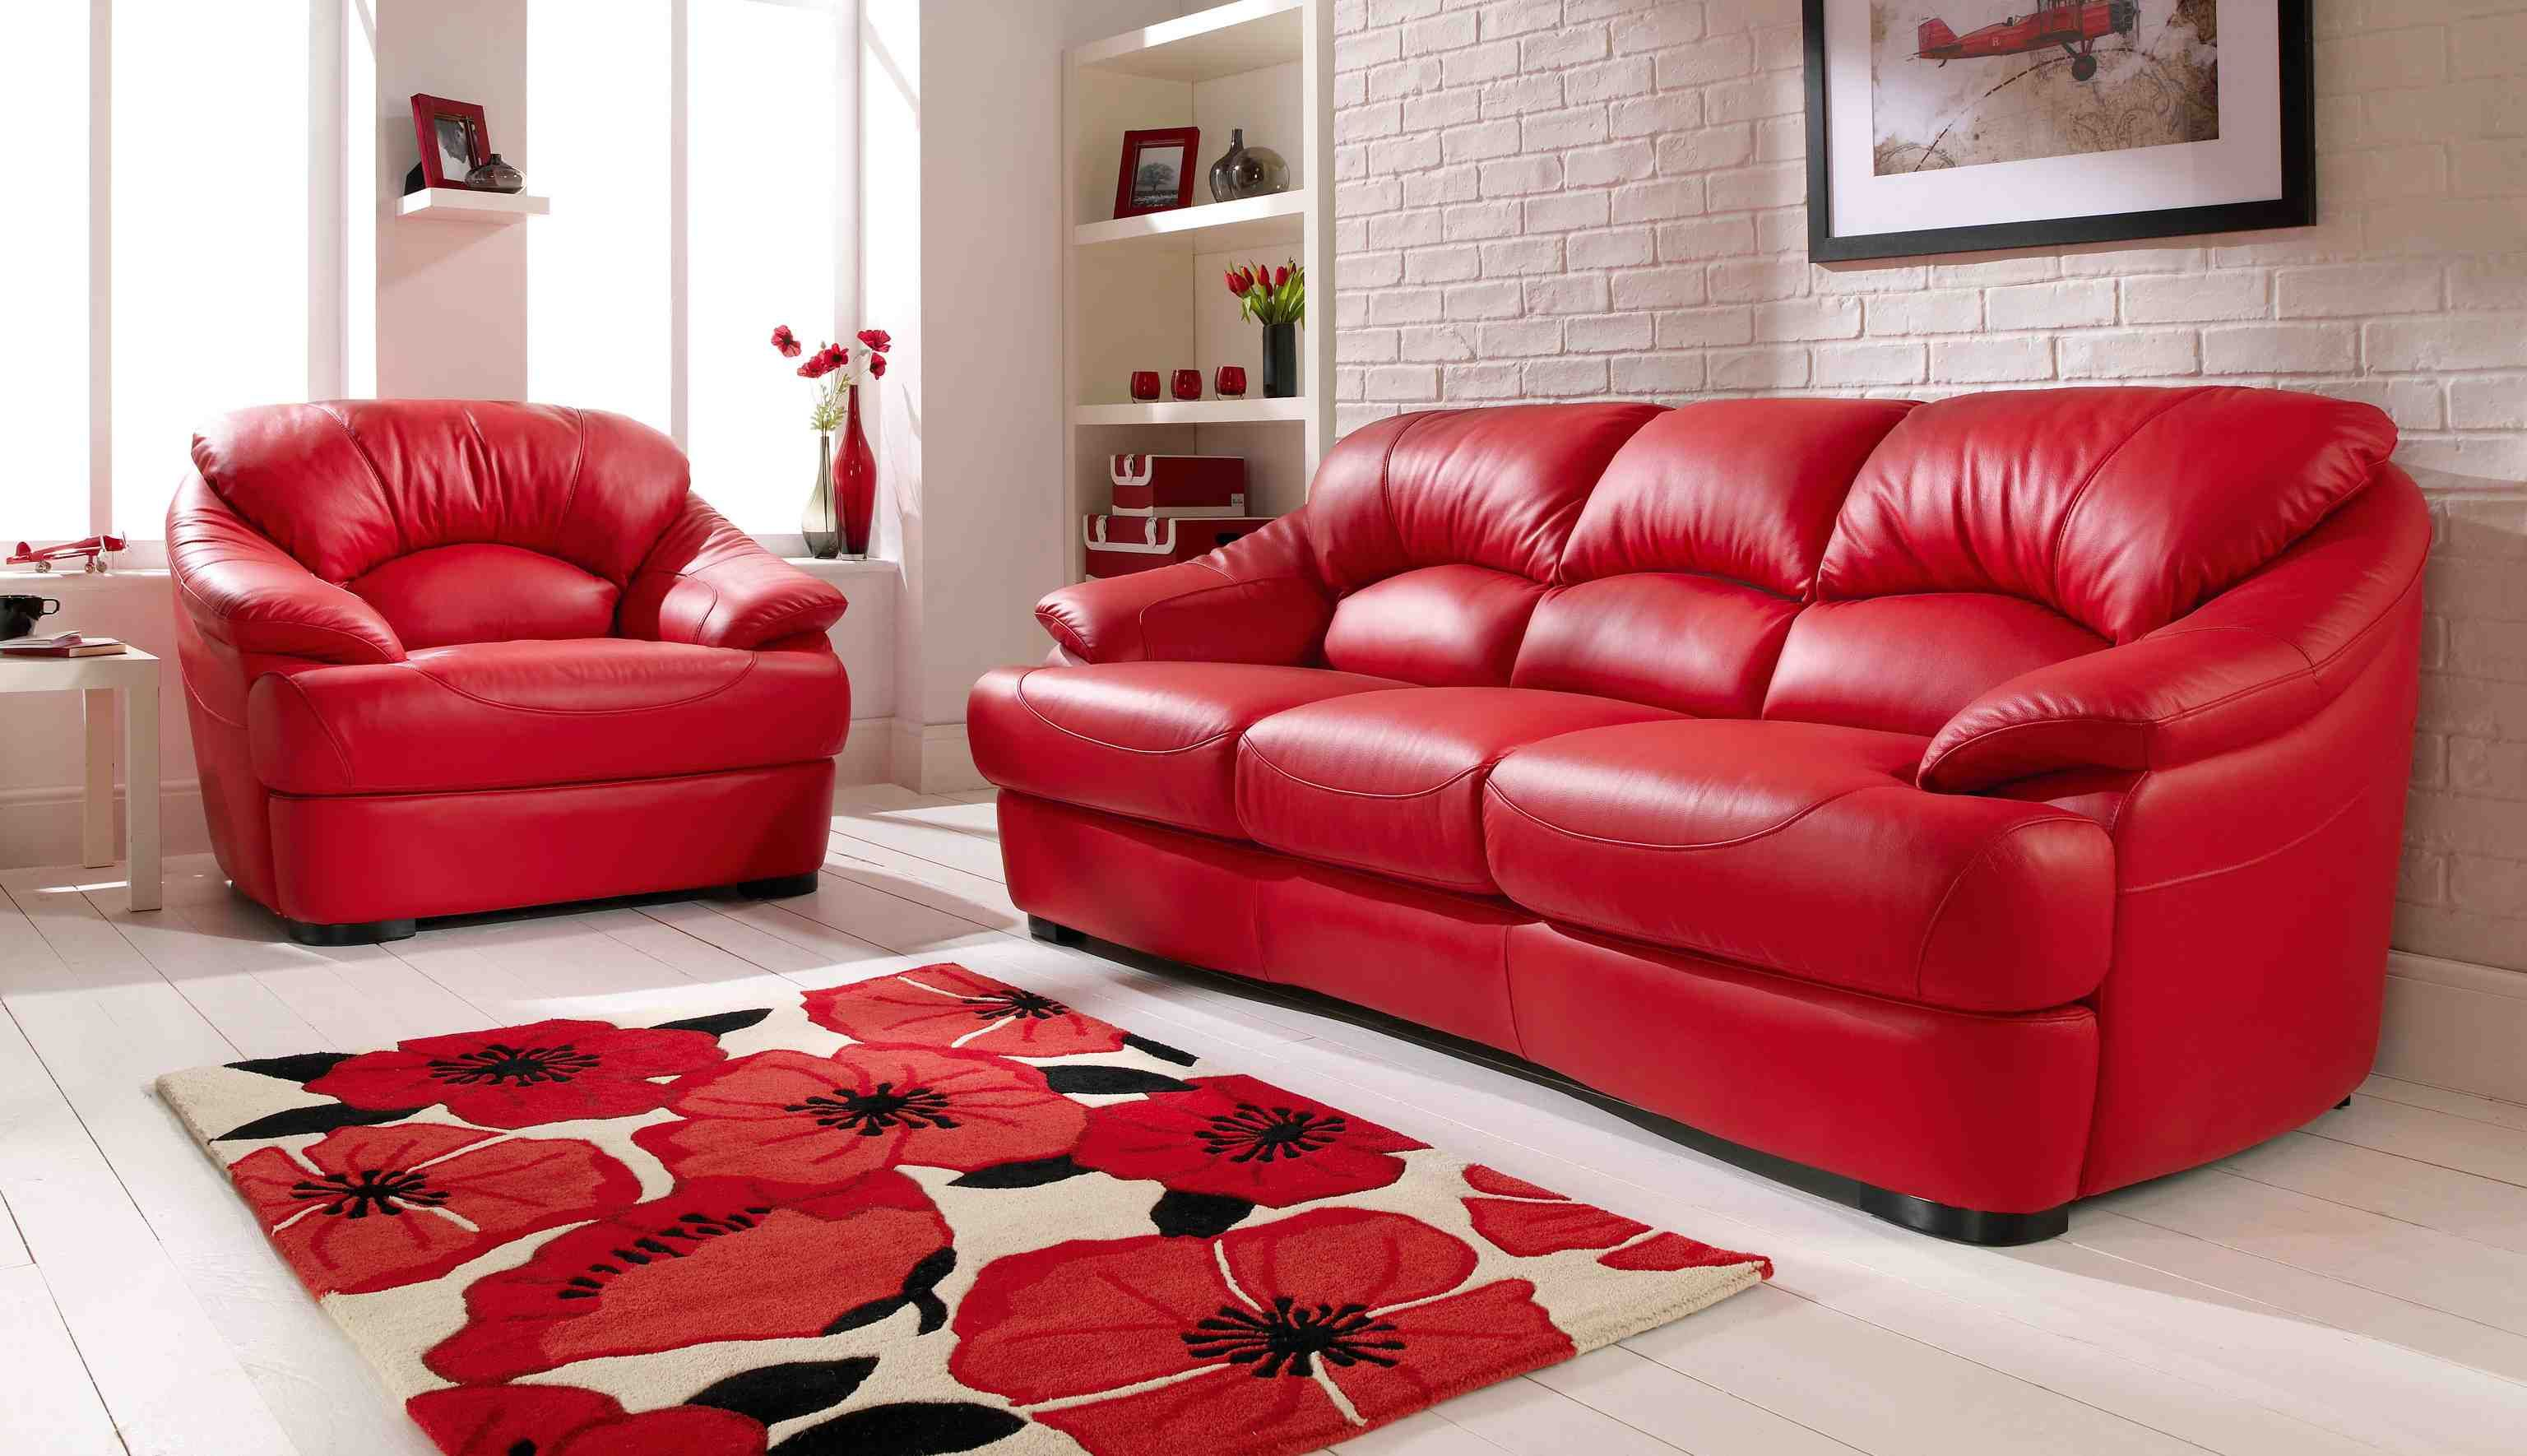 Decorating ideas with red leather sofa iron blog for Decorating with red leather furniture